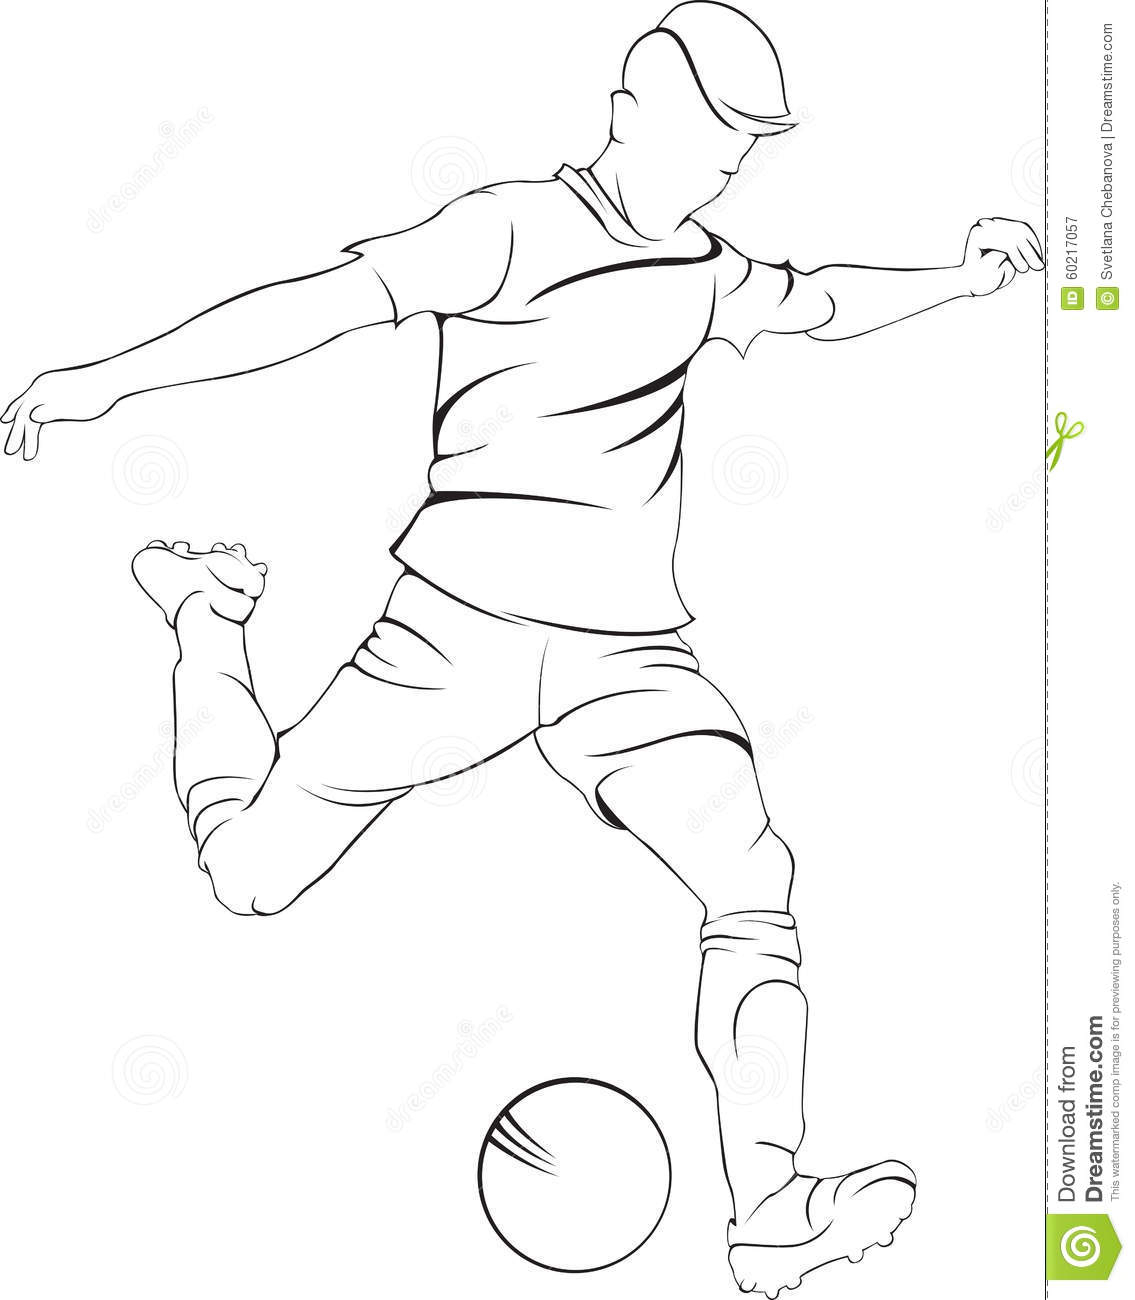 how to draw a football player easy how to draw an american football player drawingforallnet to player football draw easy how a